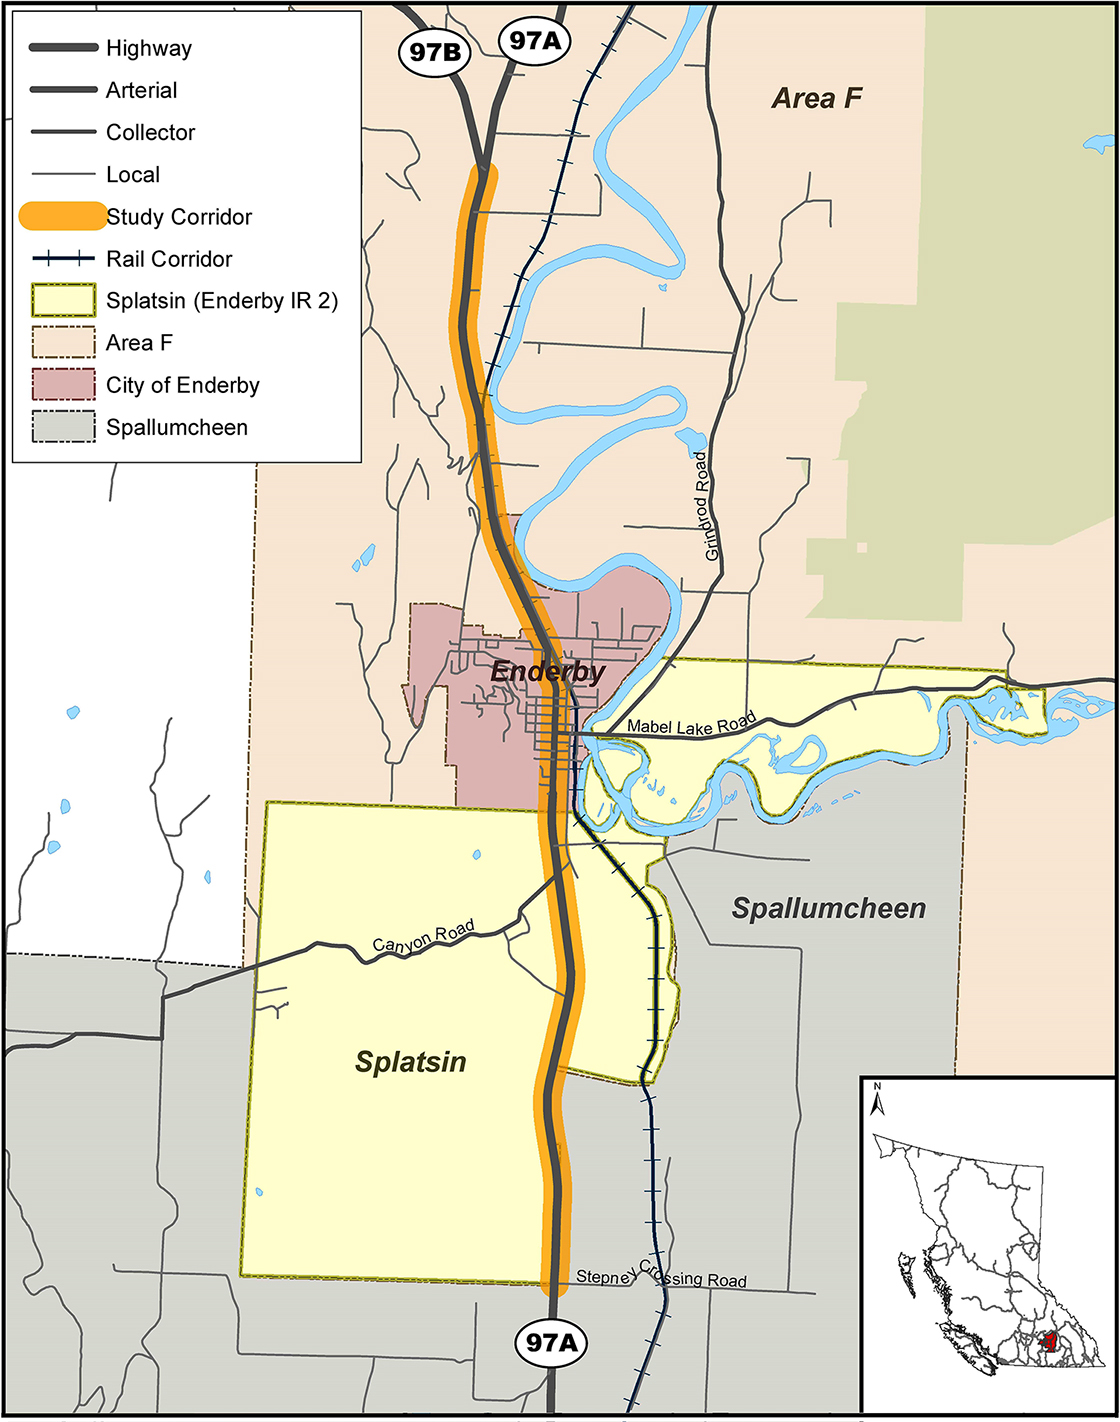 The study is examining the Highway 97A corridor through the City of Enderby and Splatsin IR#2 between Stepney Cross Road and the Highway 97A/97B junction.